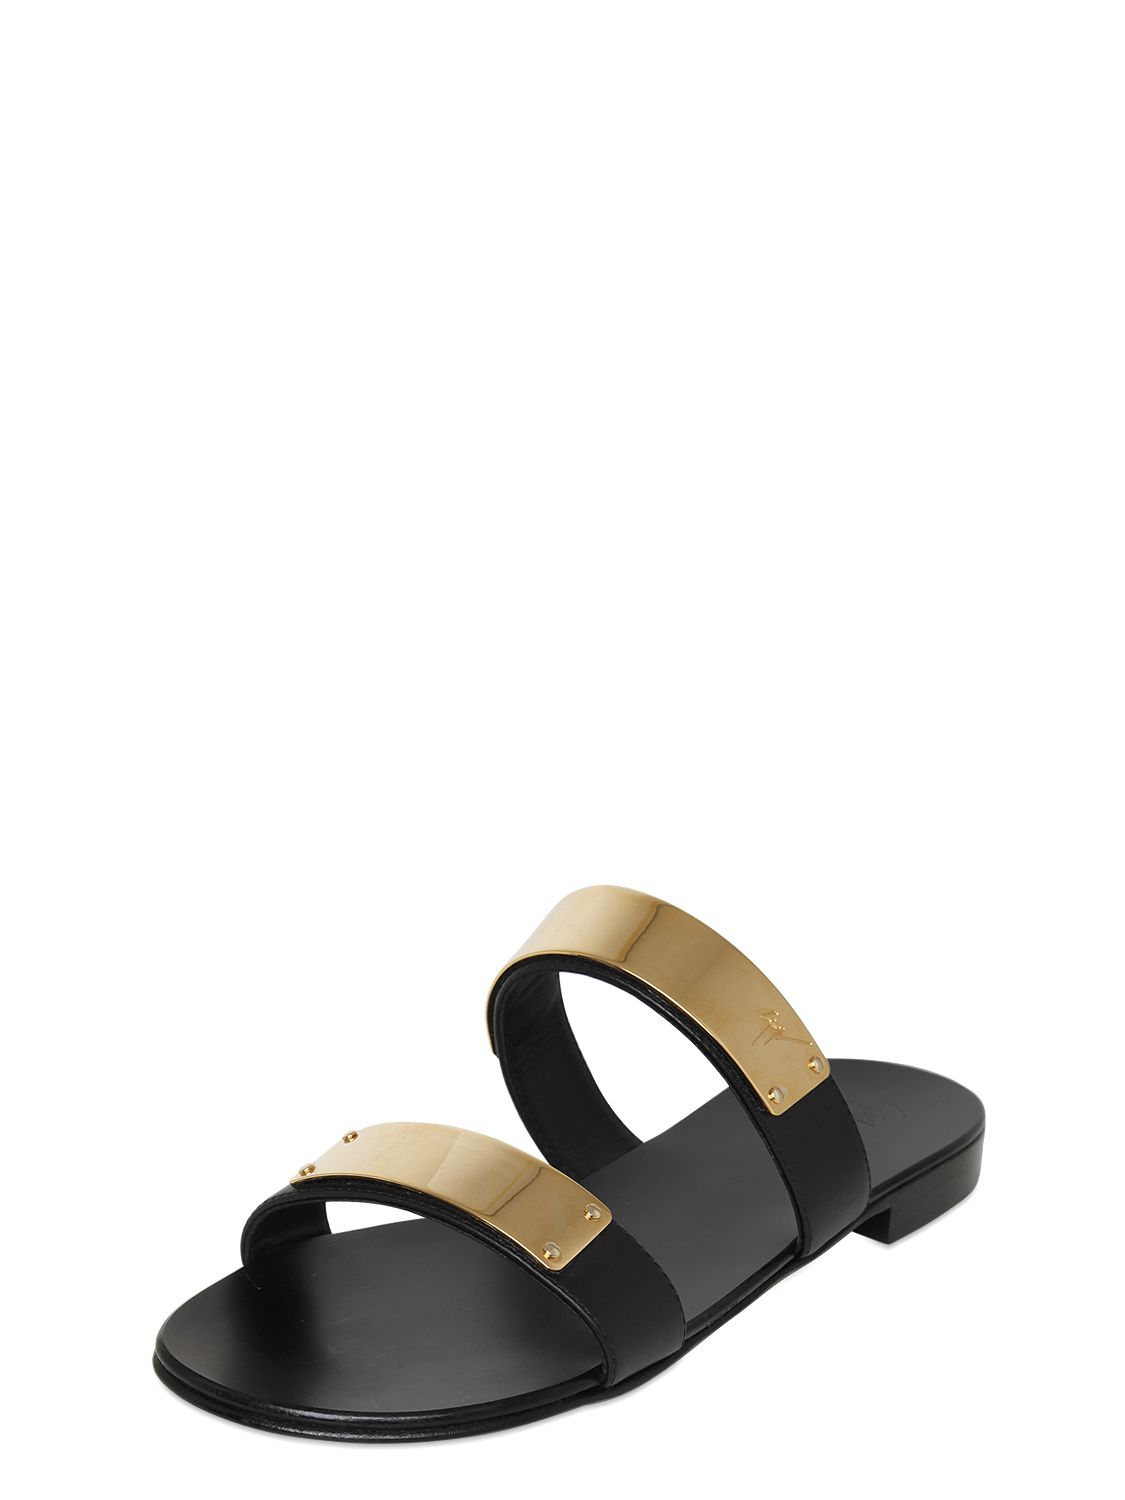 cheap new Giuseppe Zanotti Metallic Slide Sandals w/ Tags lowest price sale online for cheap discount LHTrYA